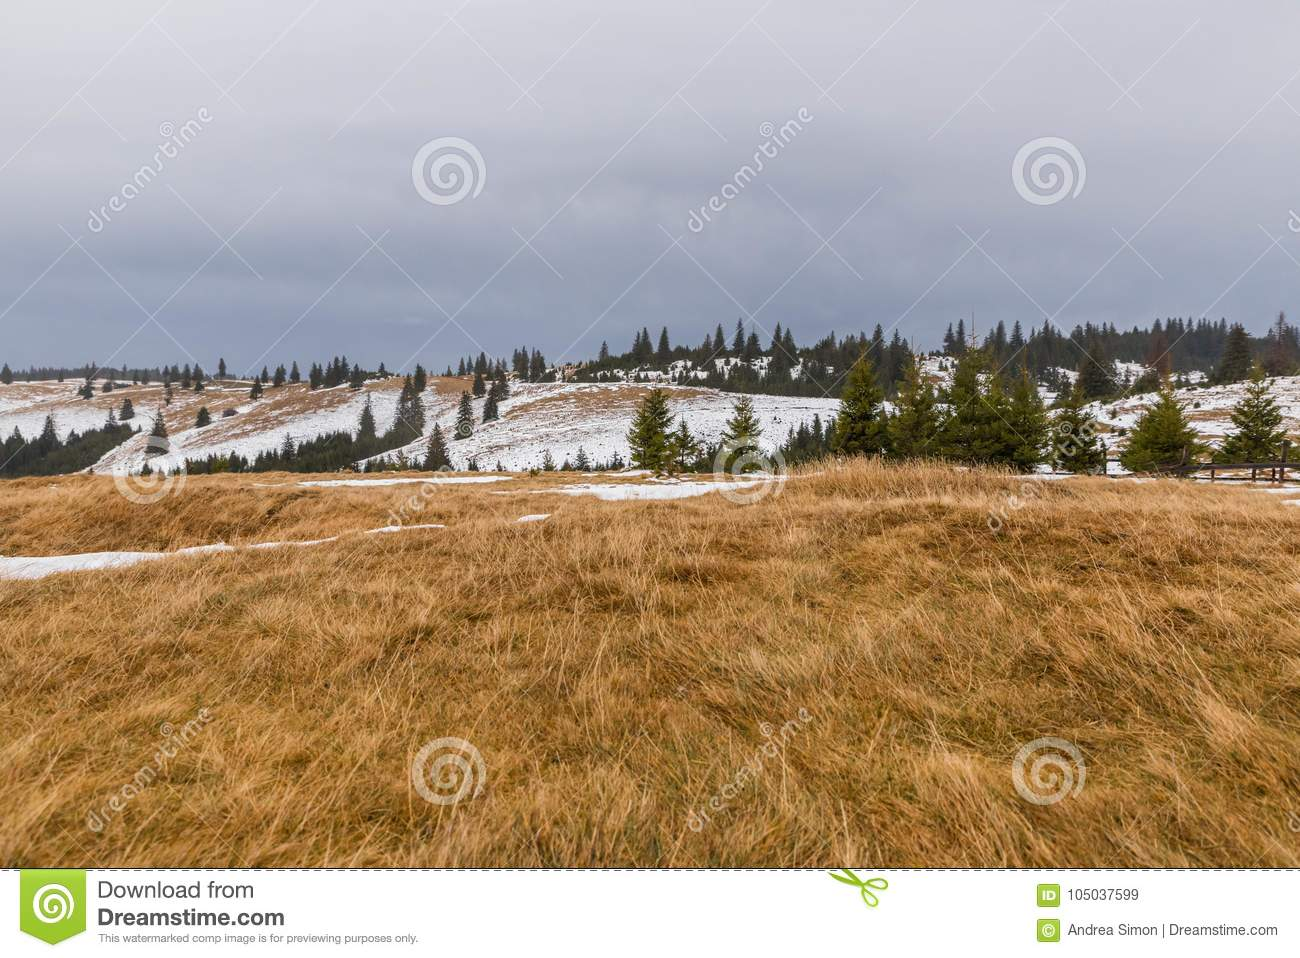 Mountain landscape and pine trees